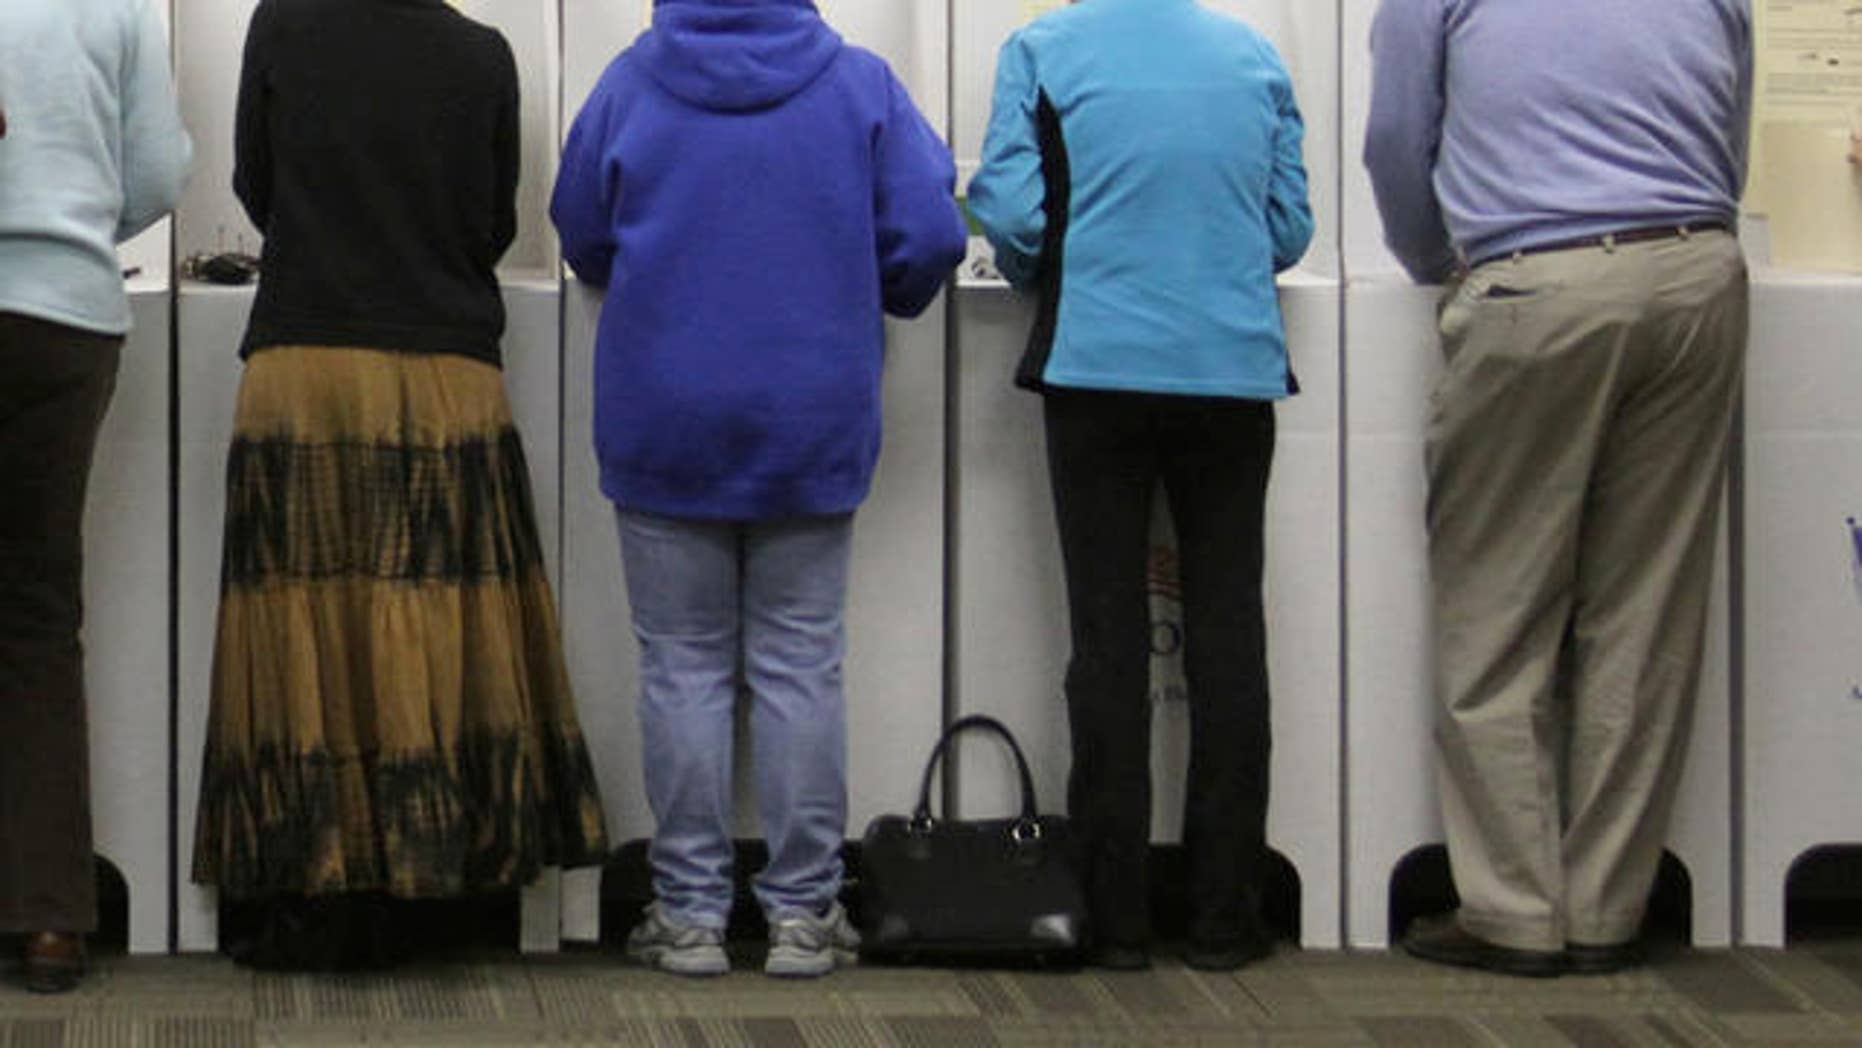 Voters cast their ballots in the general election on Tuesday, Nov. 2, 2010 in Star, Idaho. (AP Photo/Charlie Litchfield)